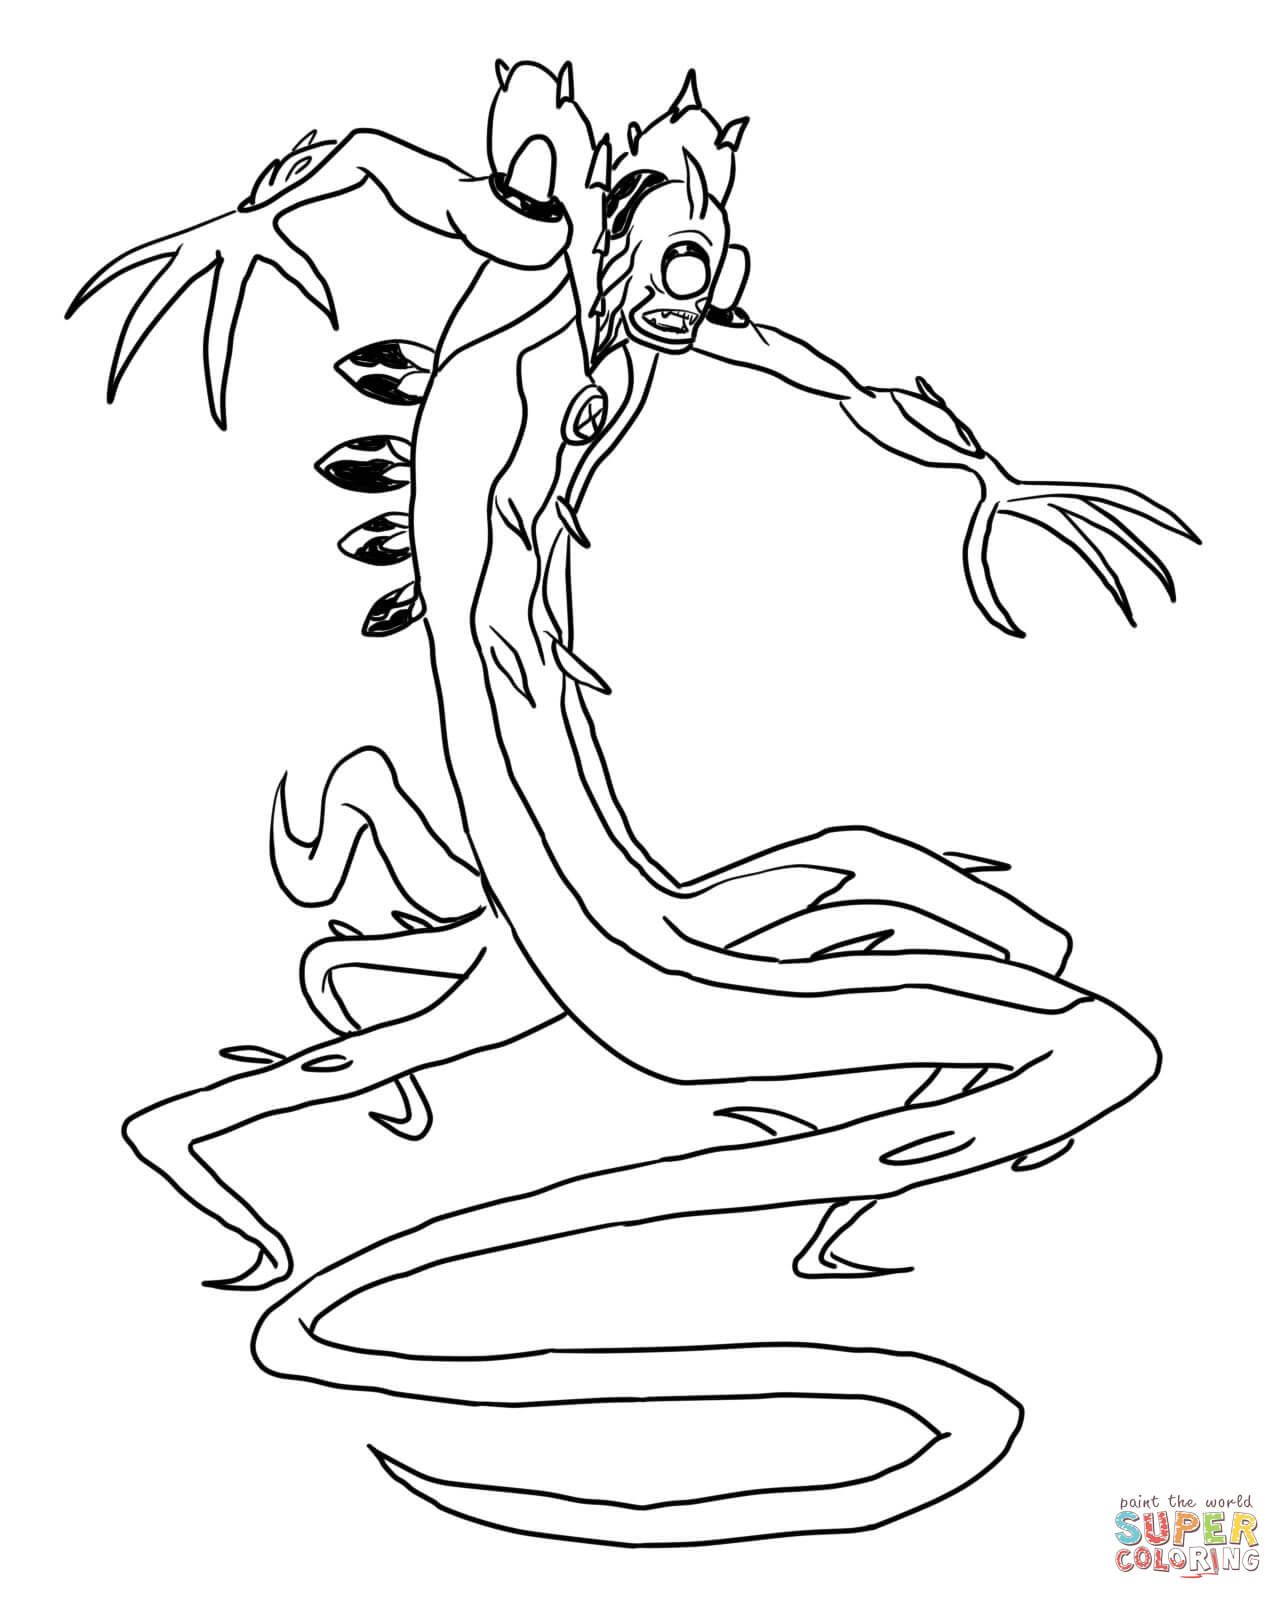 Ben 10 Wildvine Coloring Page From Ben 10 Category Select From